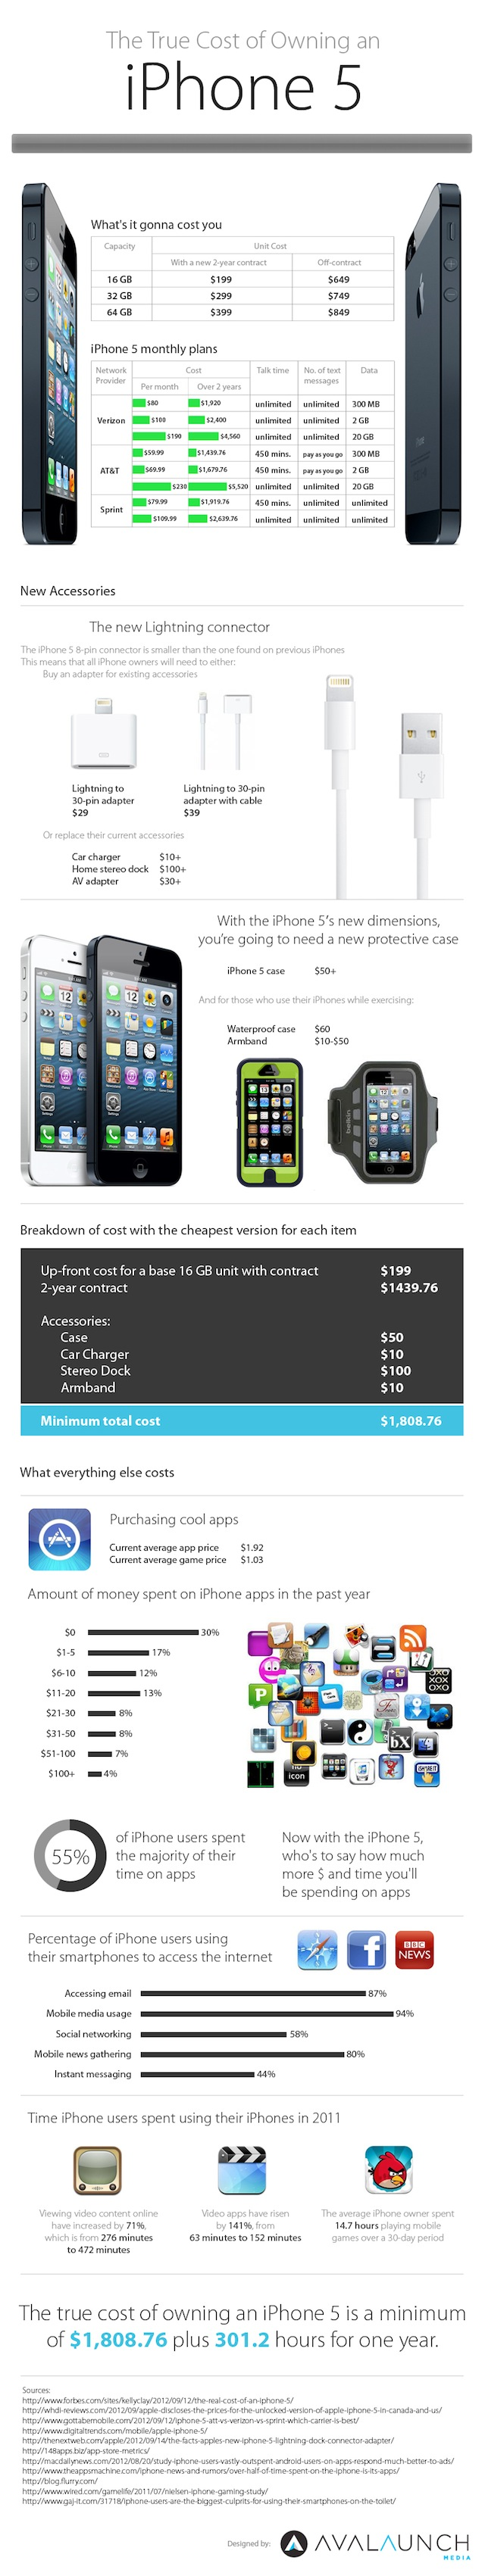 The iPhone 5 Really Costs You $1800